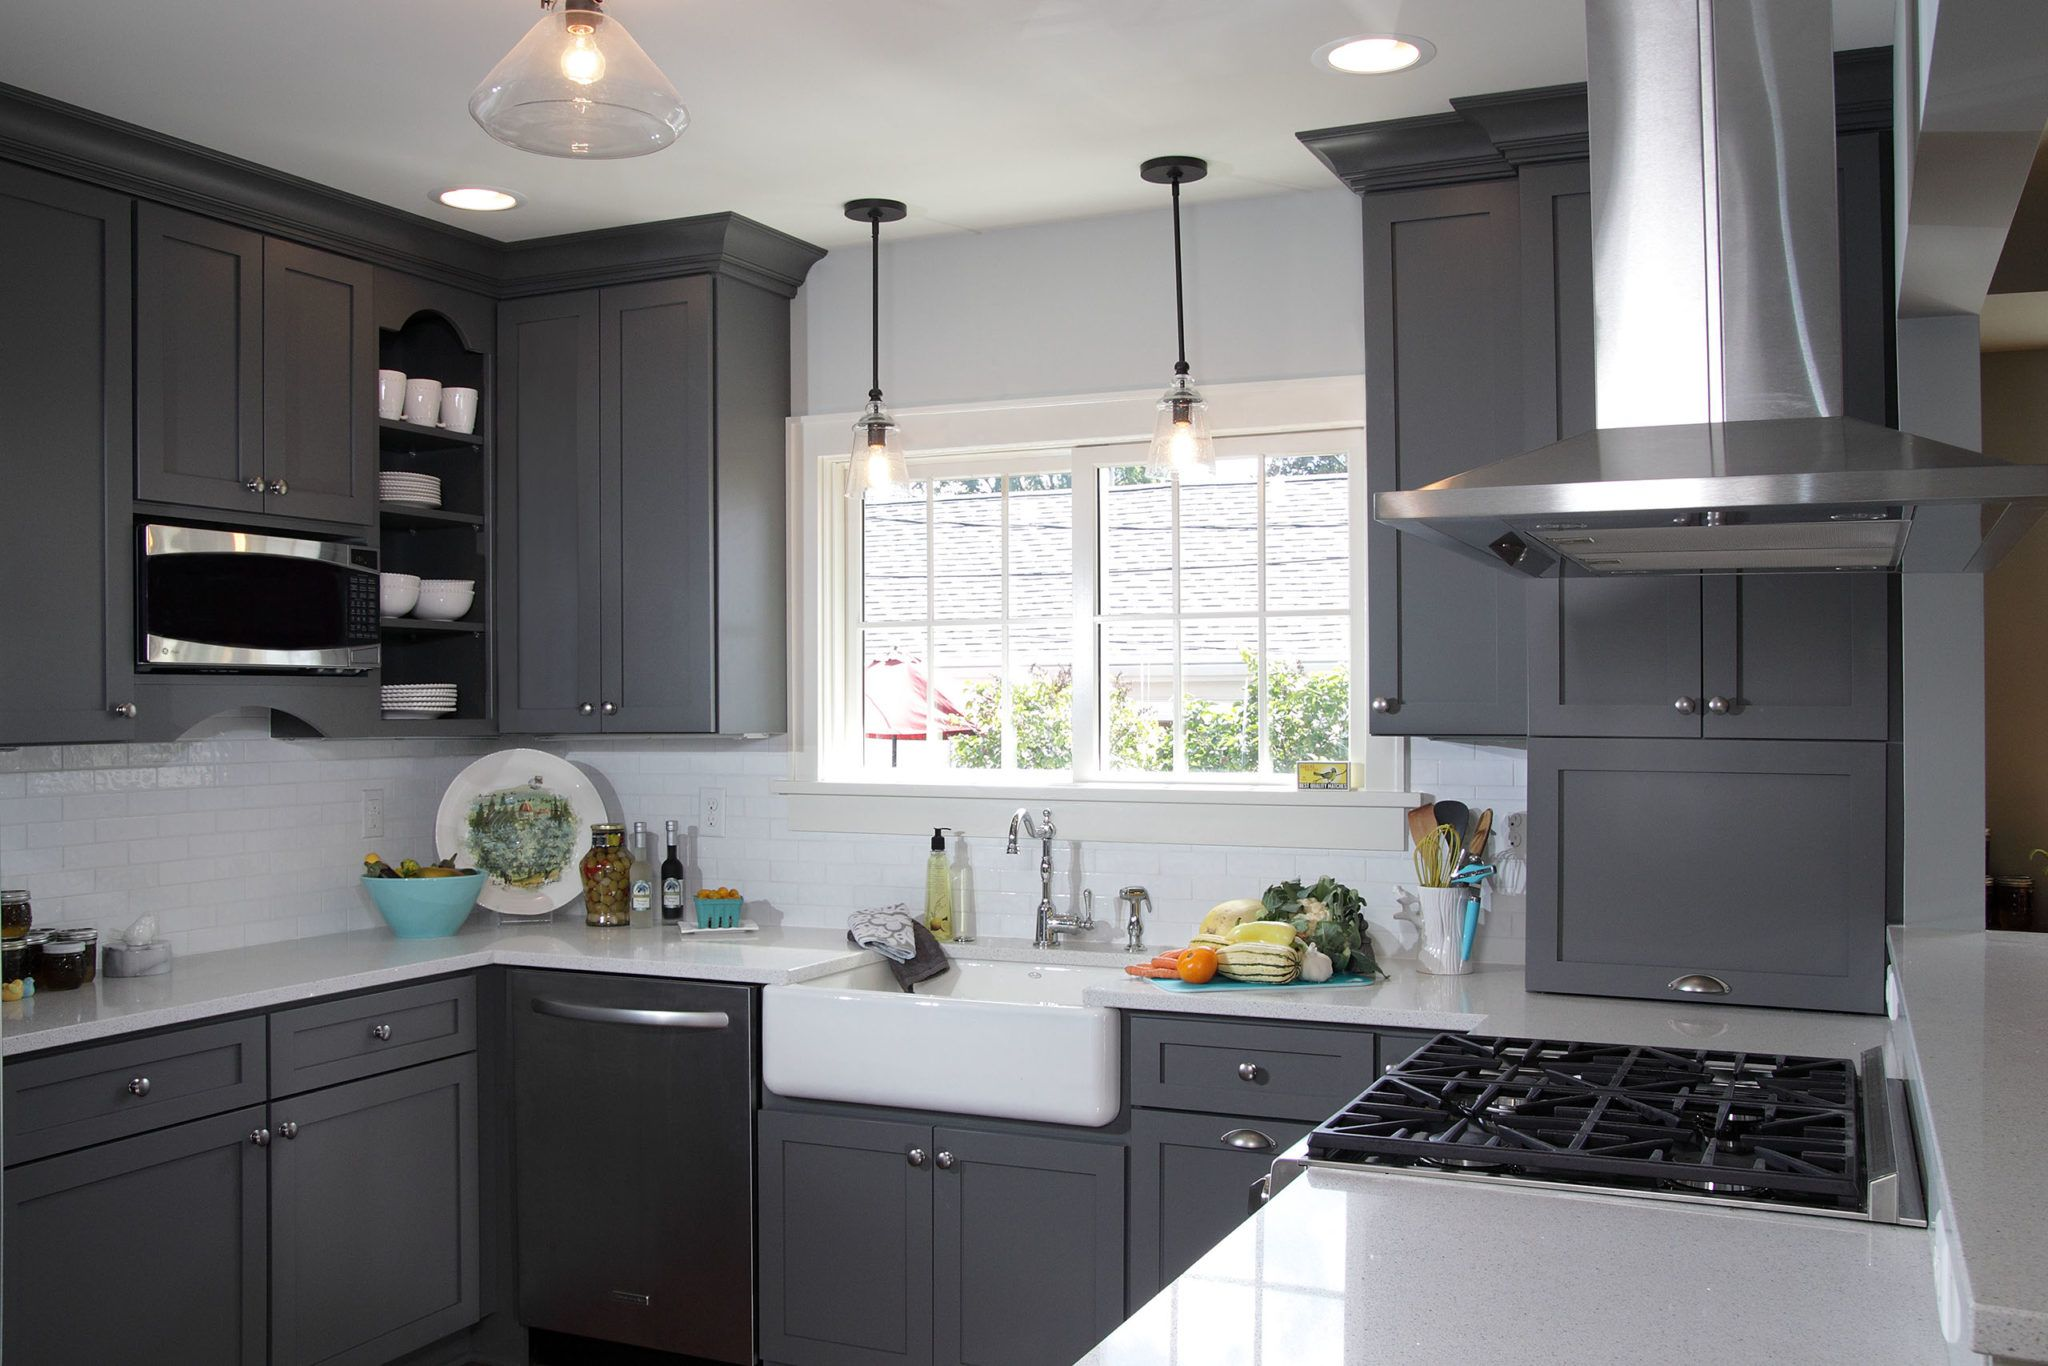 10 designs perfect for your small kitchen with images grey kitchen designs dark grey on kitchen decor grey cabinets id=34221